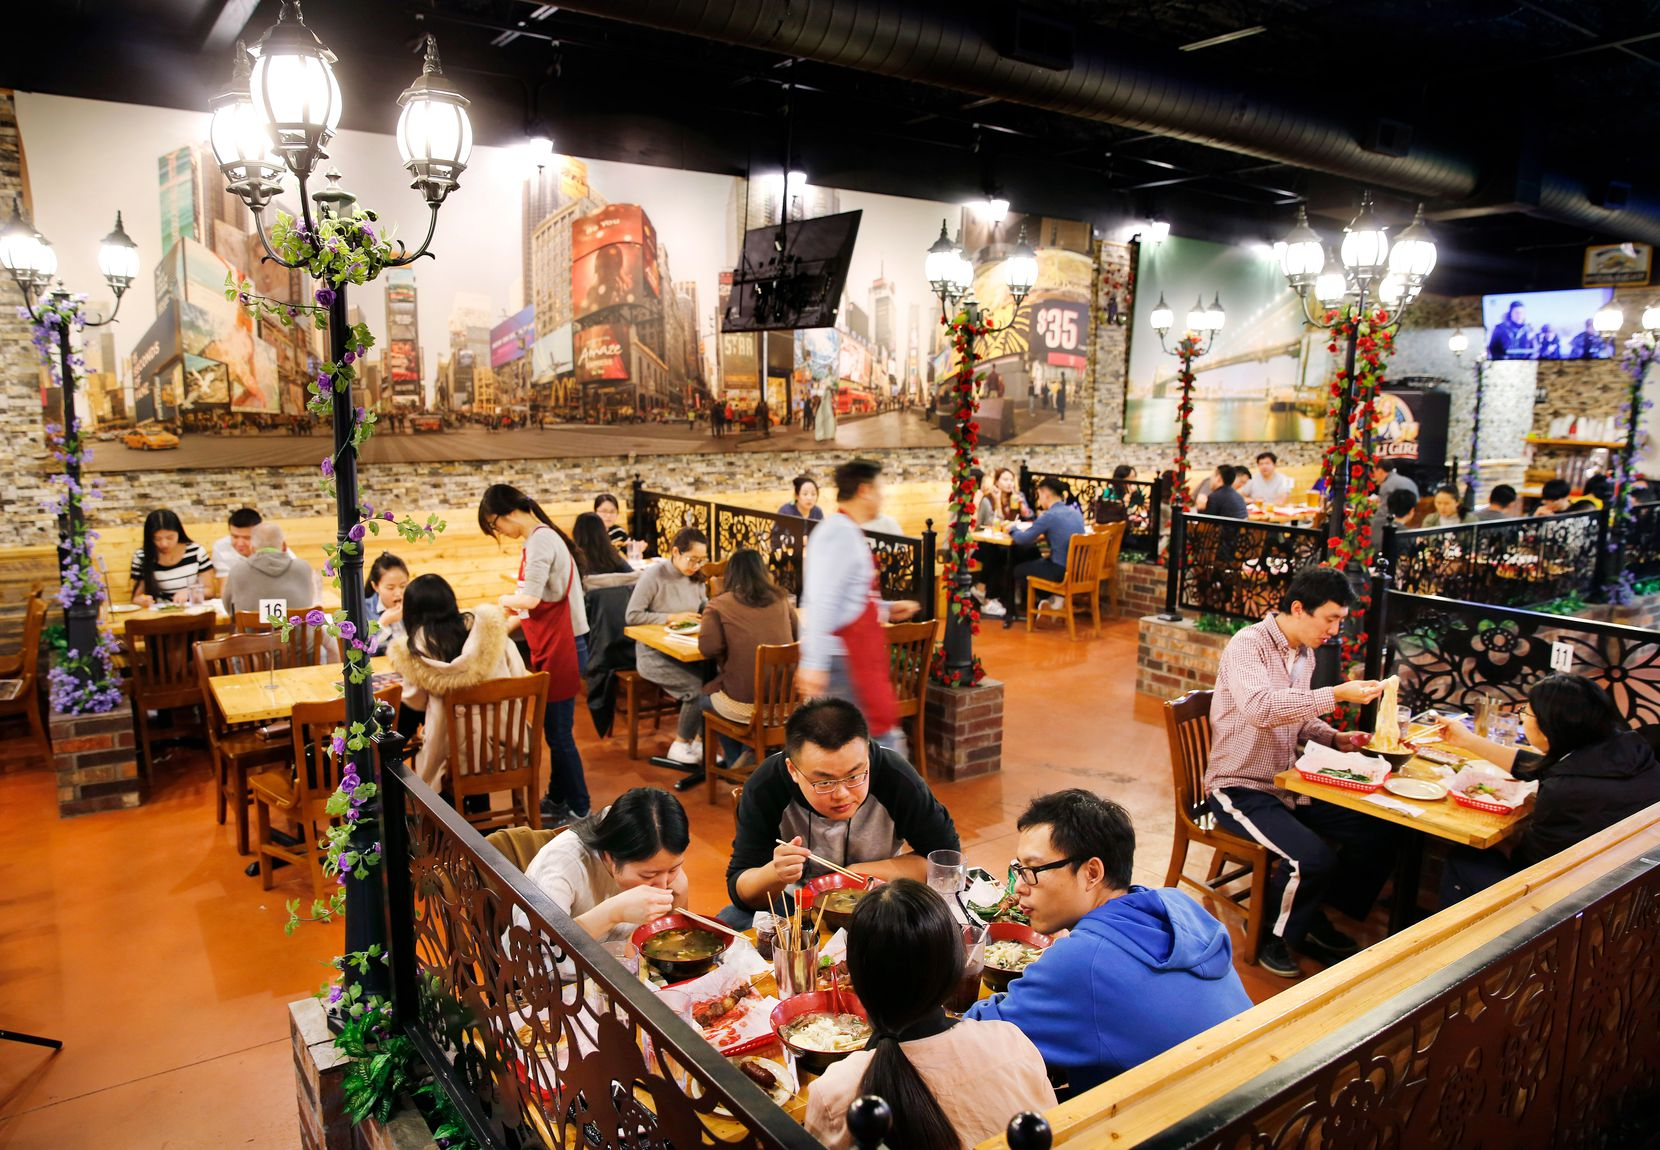 The dining room at FatNi BBQ, which specializes in the kind of Xinjiang-style grilled meat skewers that are hugely popular street-food in Beijing, evokes a street scene.